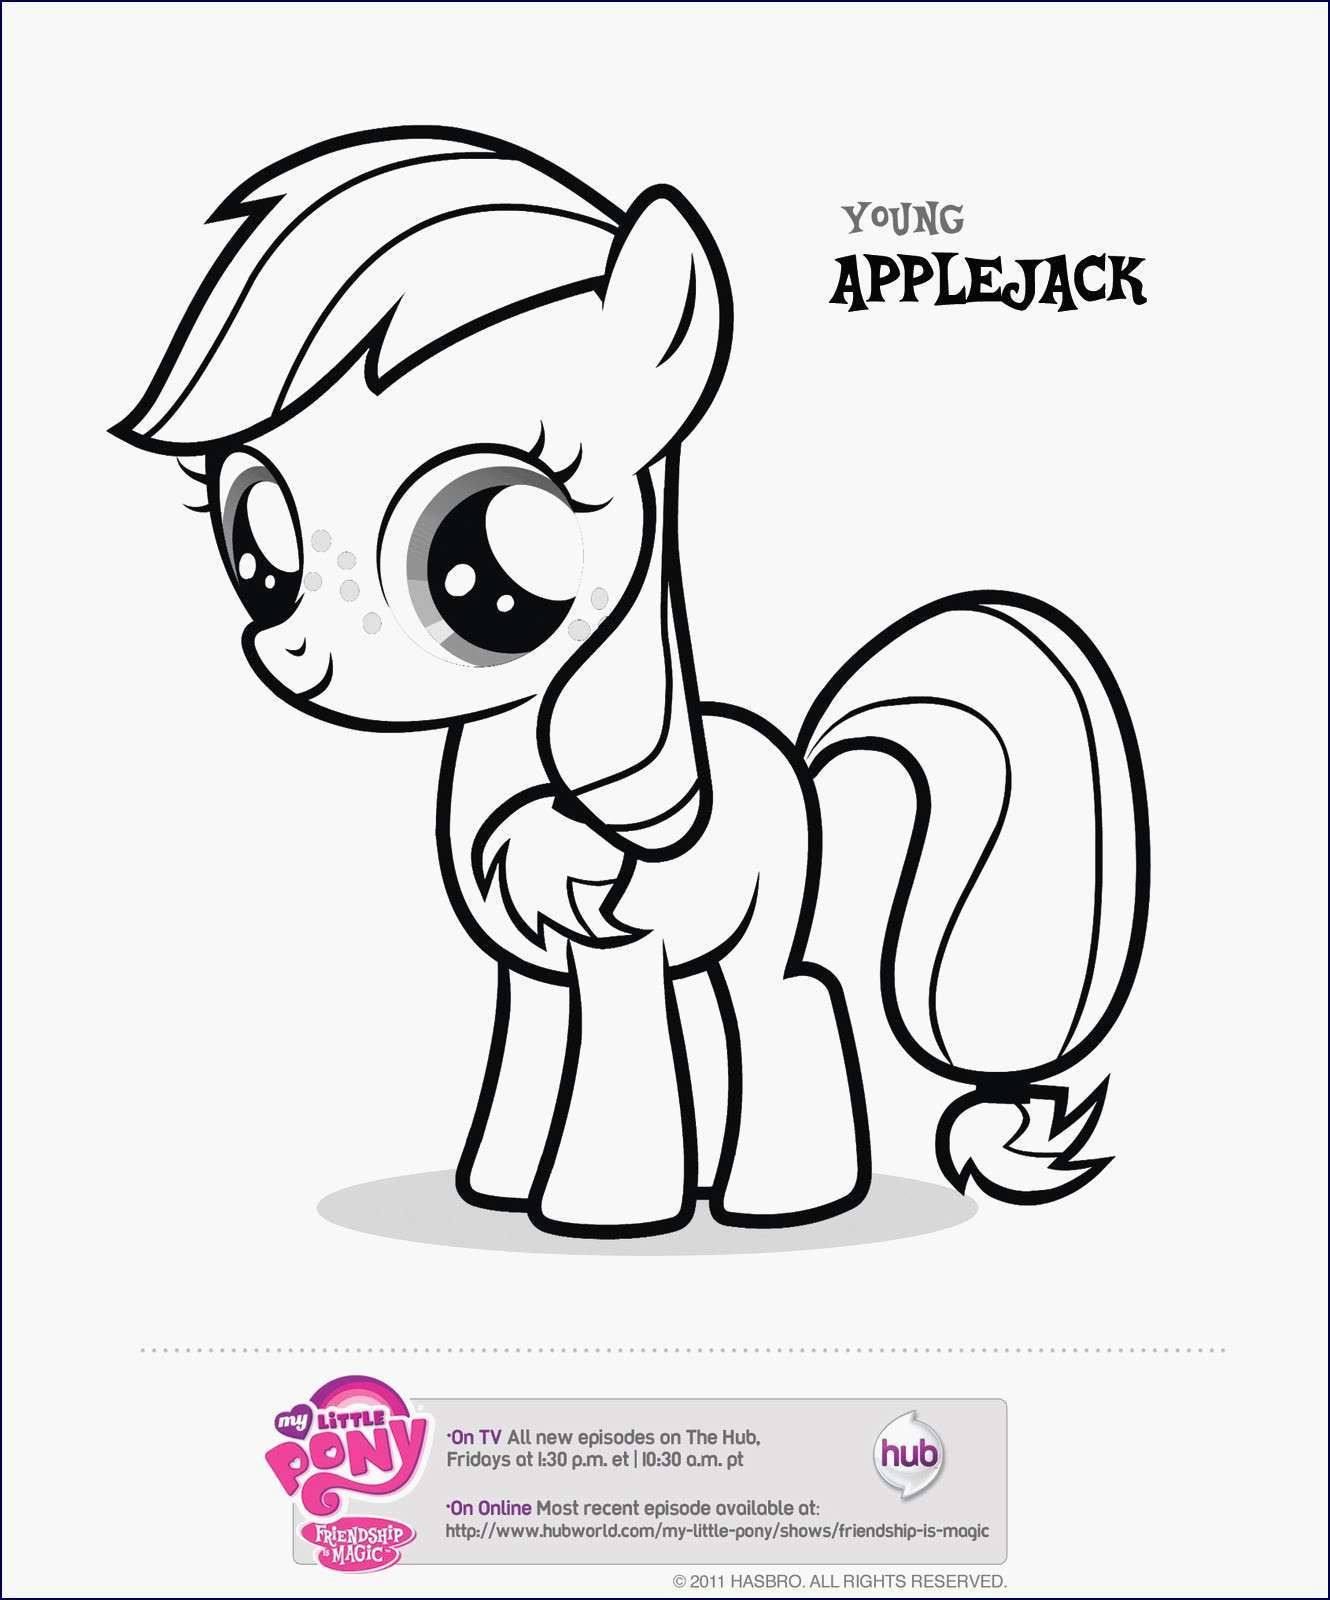 my little pony friendship is magic coloring pages Download-36 Equestria Girls Fluttershy Coloring Pages Free Neu Ausmalbilder My Little Pony Rainbow Dash 11-c